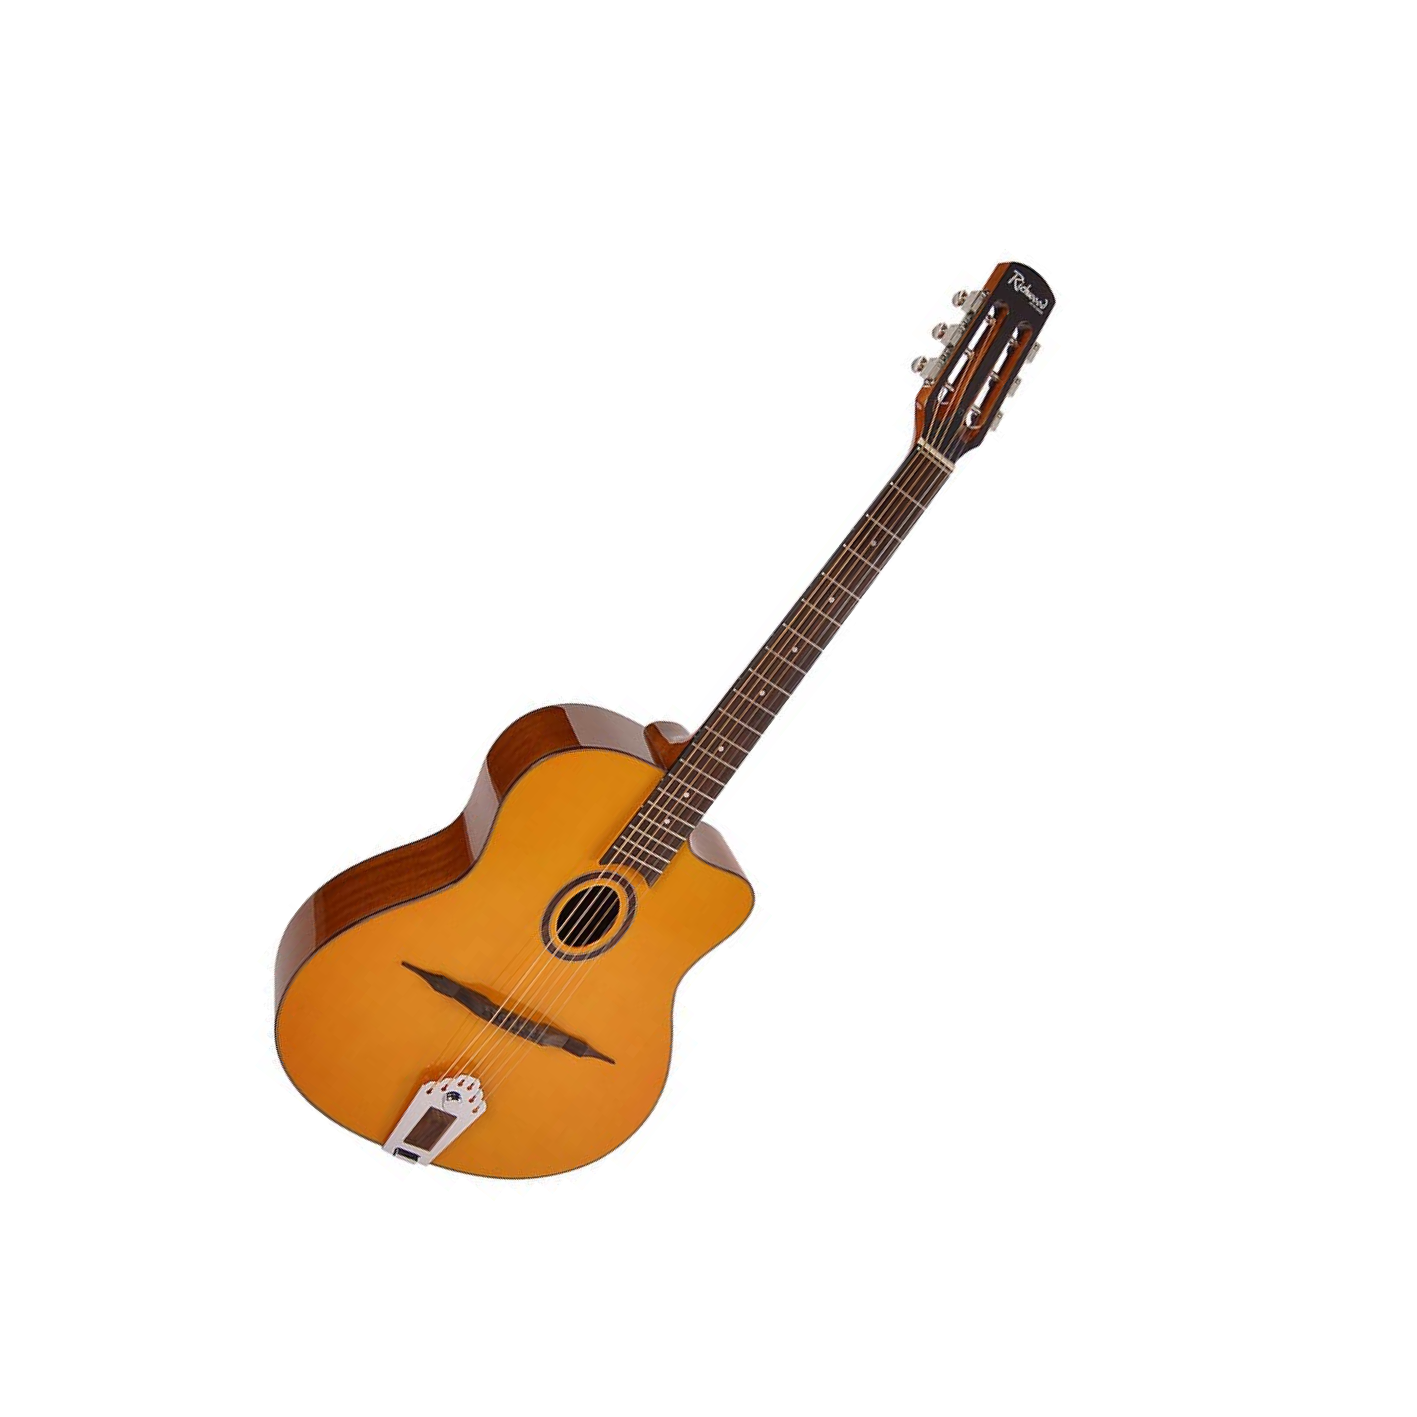 Richwood RM-70-NT Gypsy Jazz Guitar